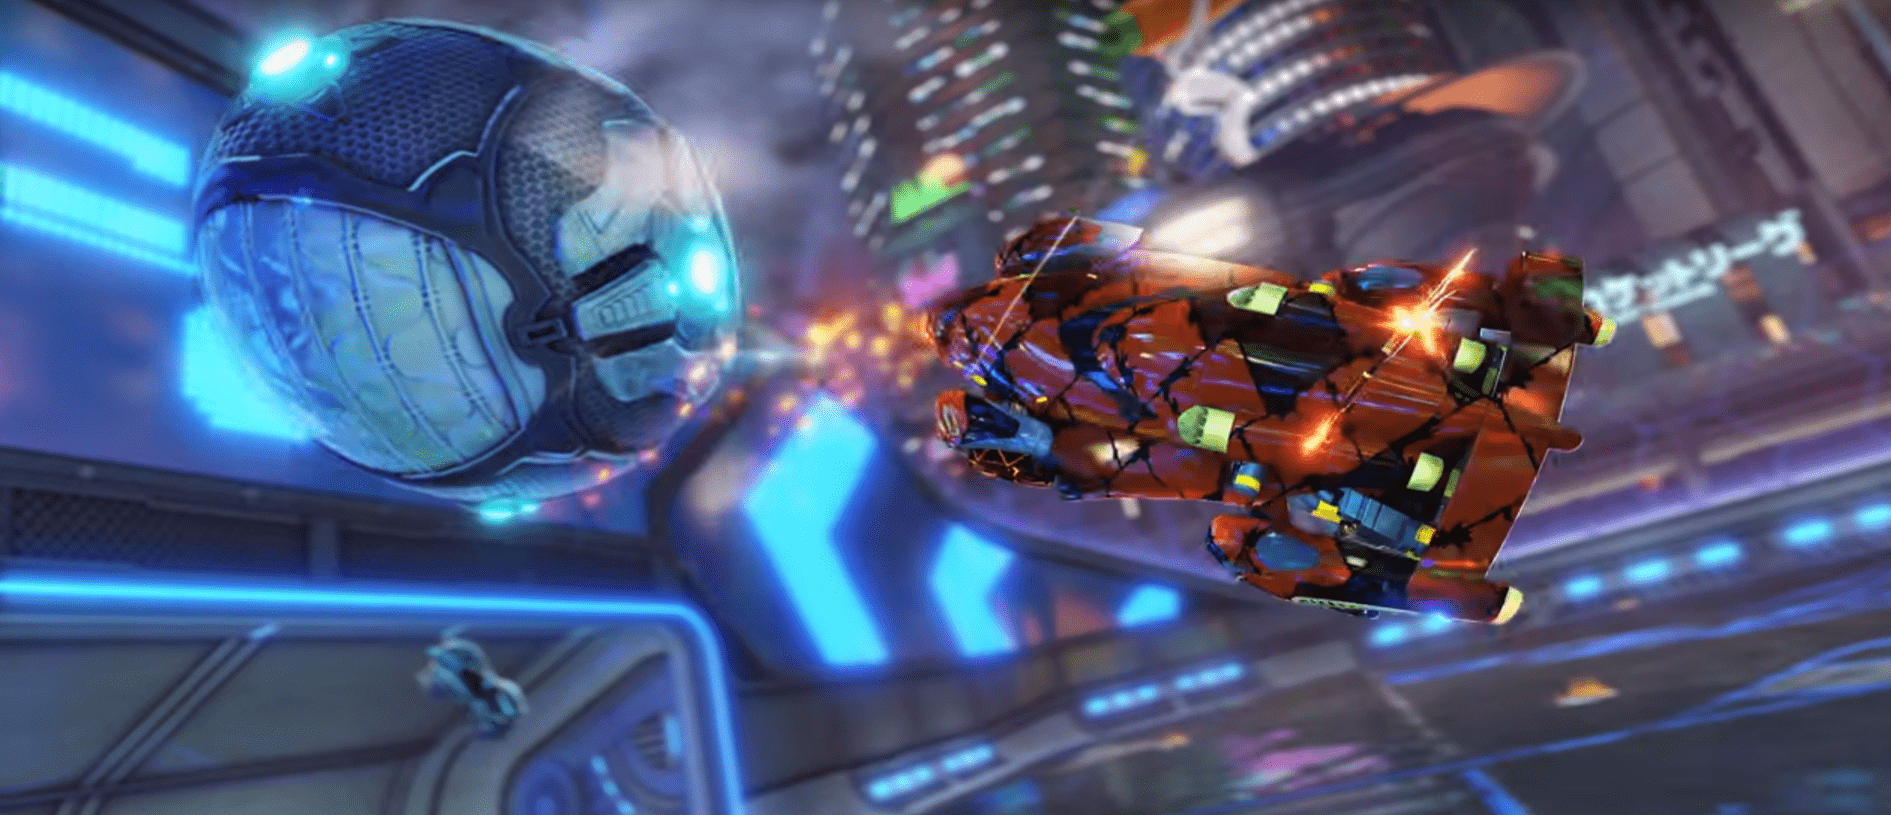 Rocket League Gamers Have The Chance To Win The Goal Of The Year Award, Along With Their Share Of $25,000